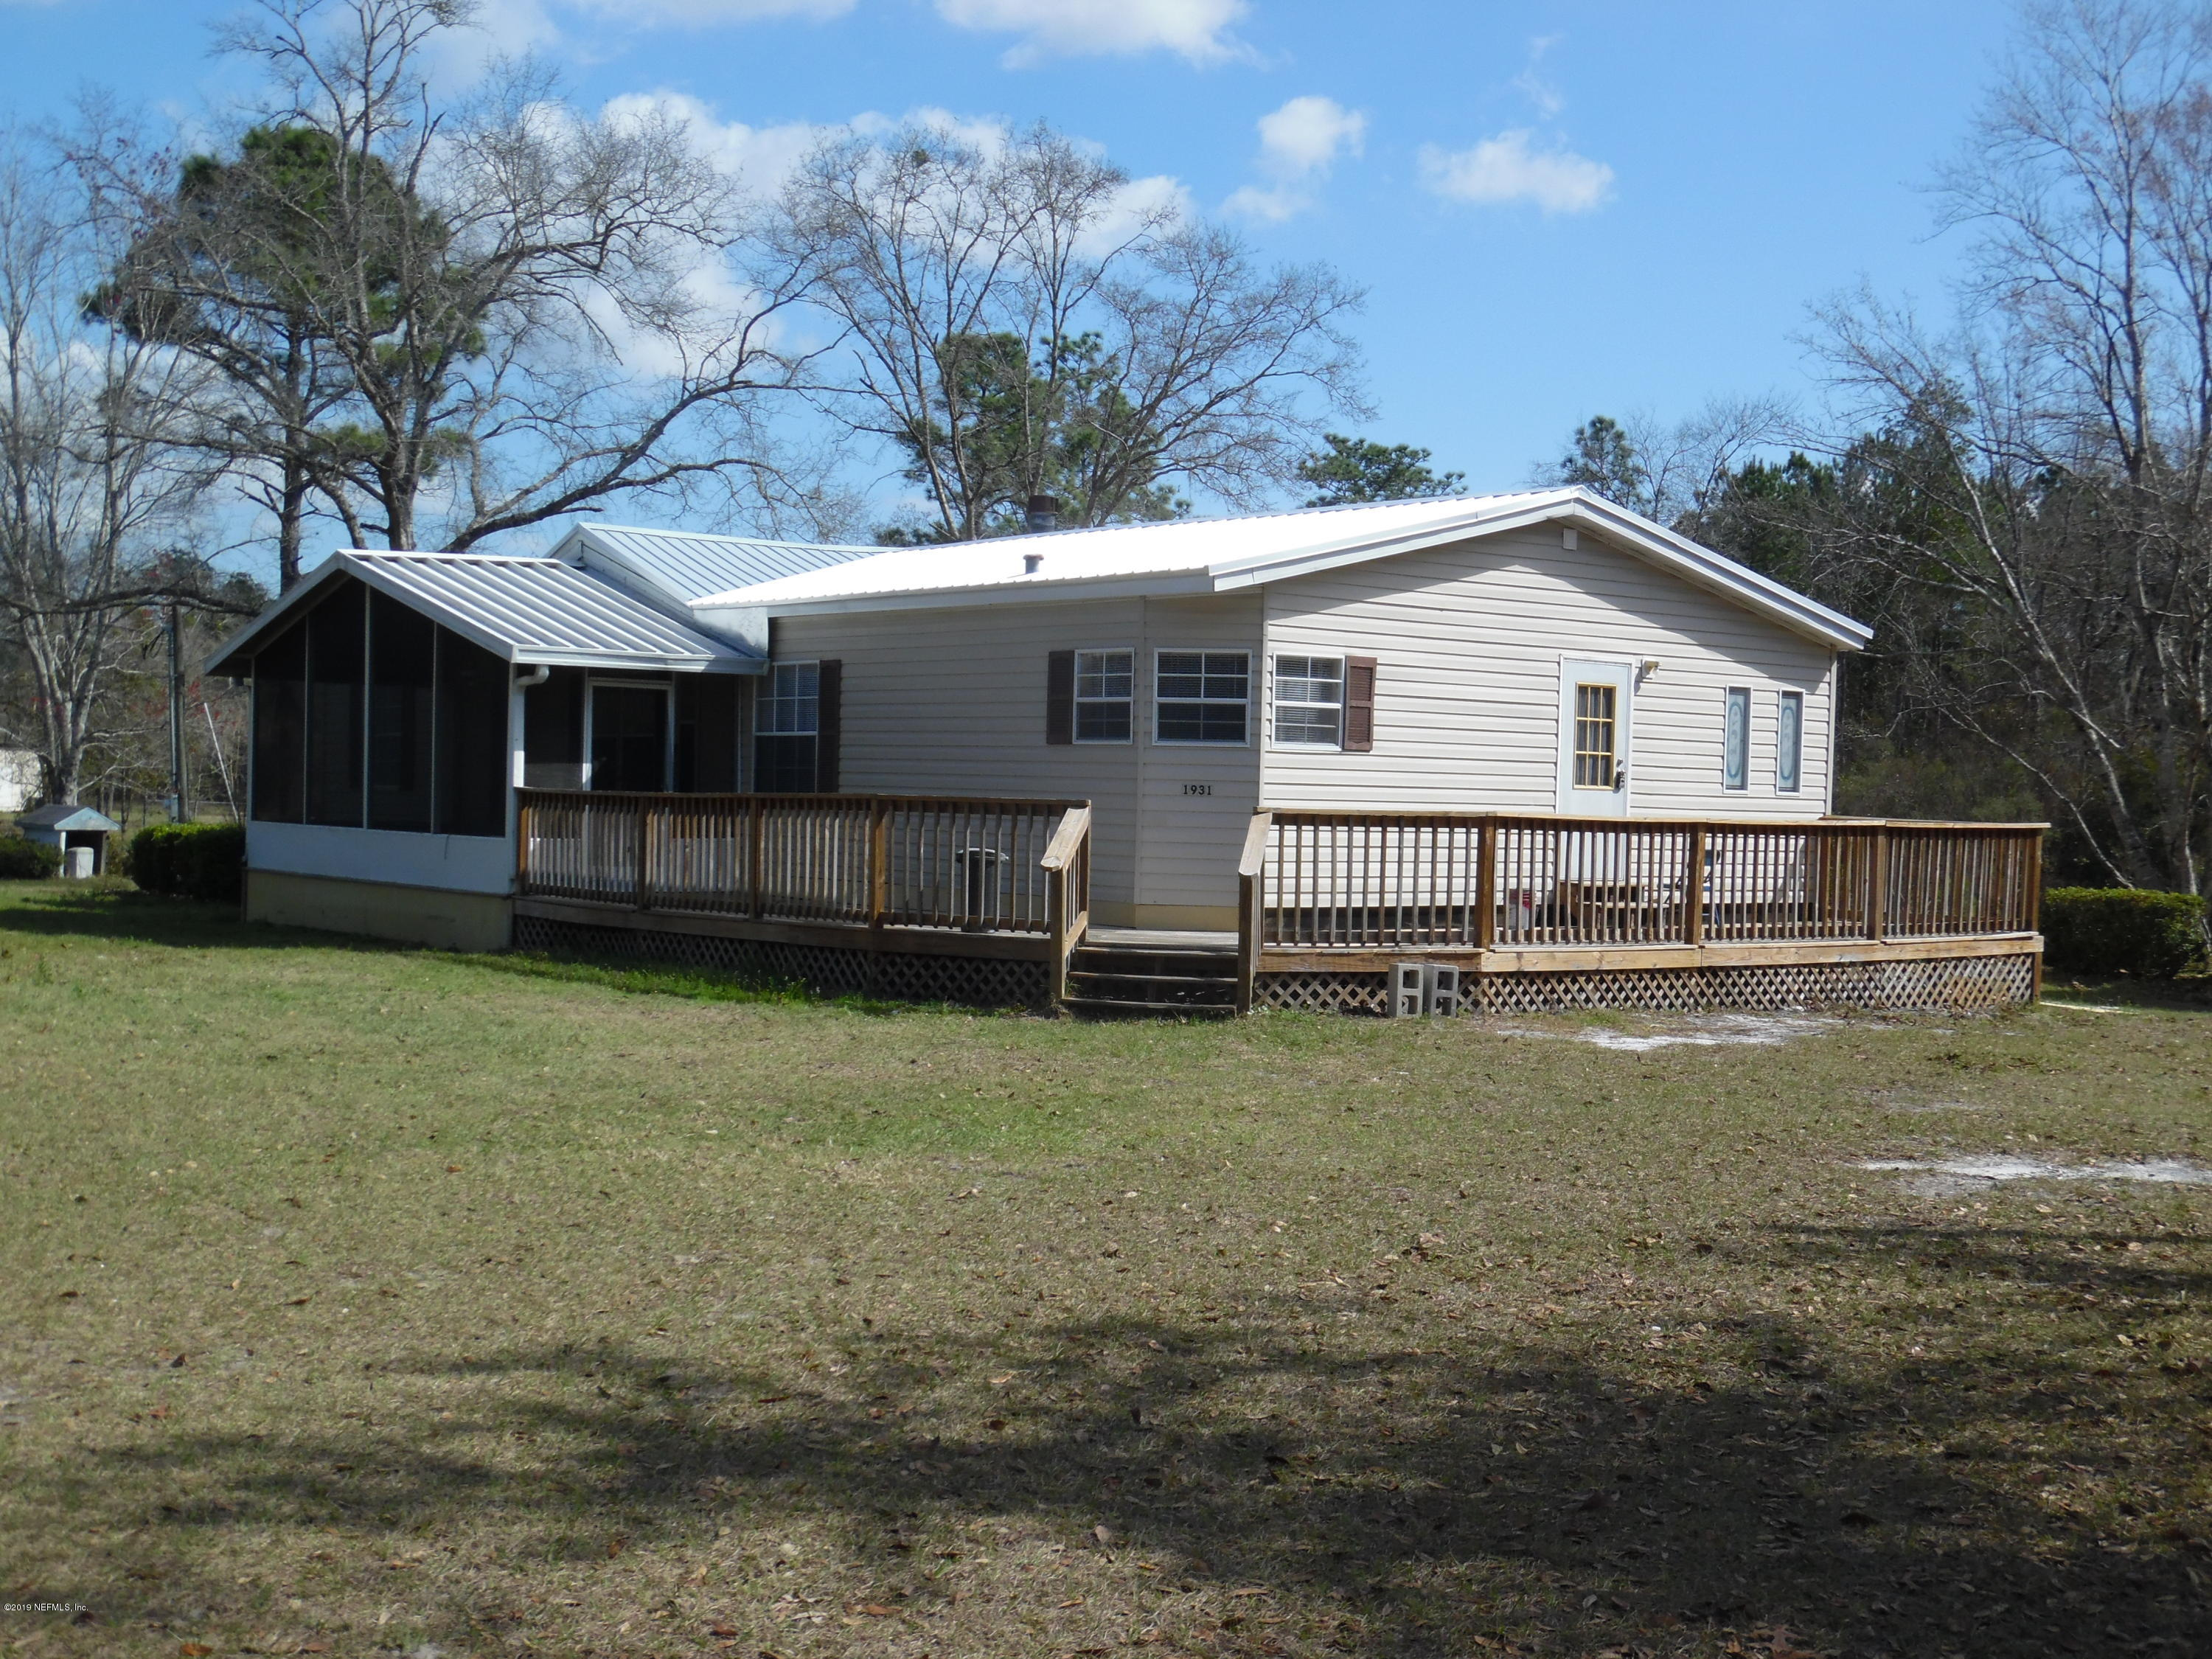 Photo of 1931 OPENWOODS, MIDDLEBURG, FL 32068